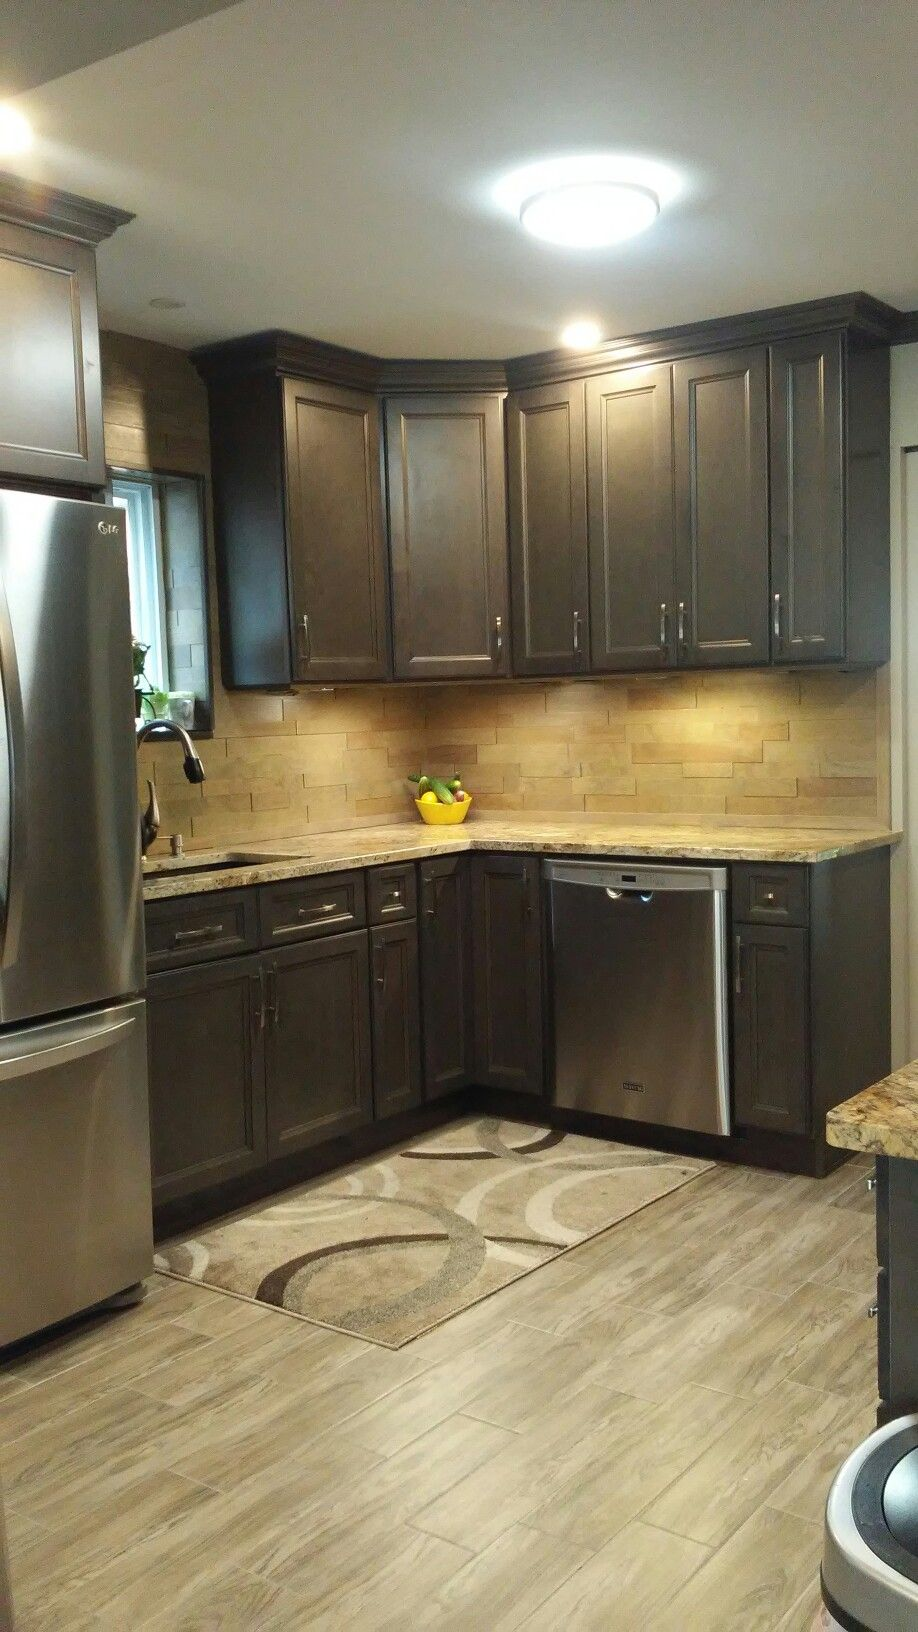 My Husband Made My Dream Kitchen Westpoint Gray Cabintes Wood Back Slpash From Costco We Coated With Polyureth Floor Installation Grey Cabinets Dream Kitchen